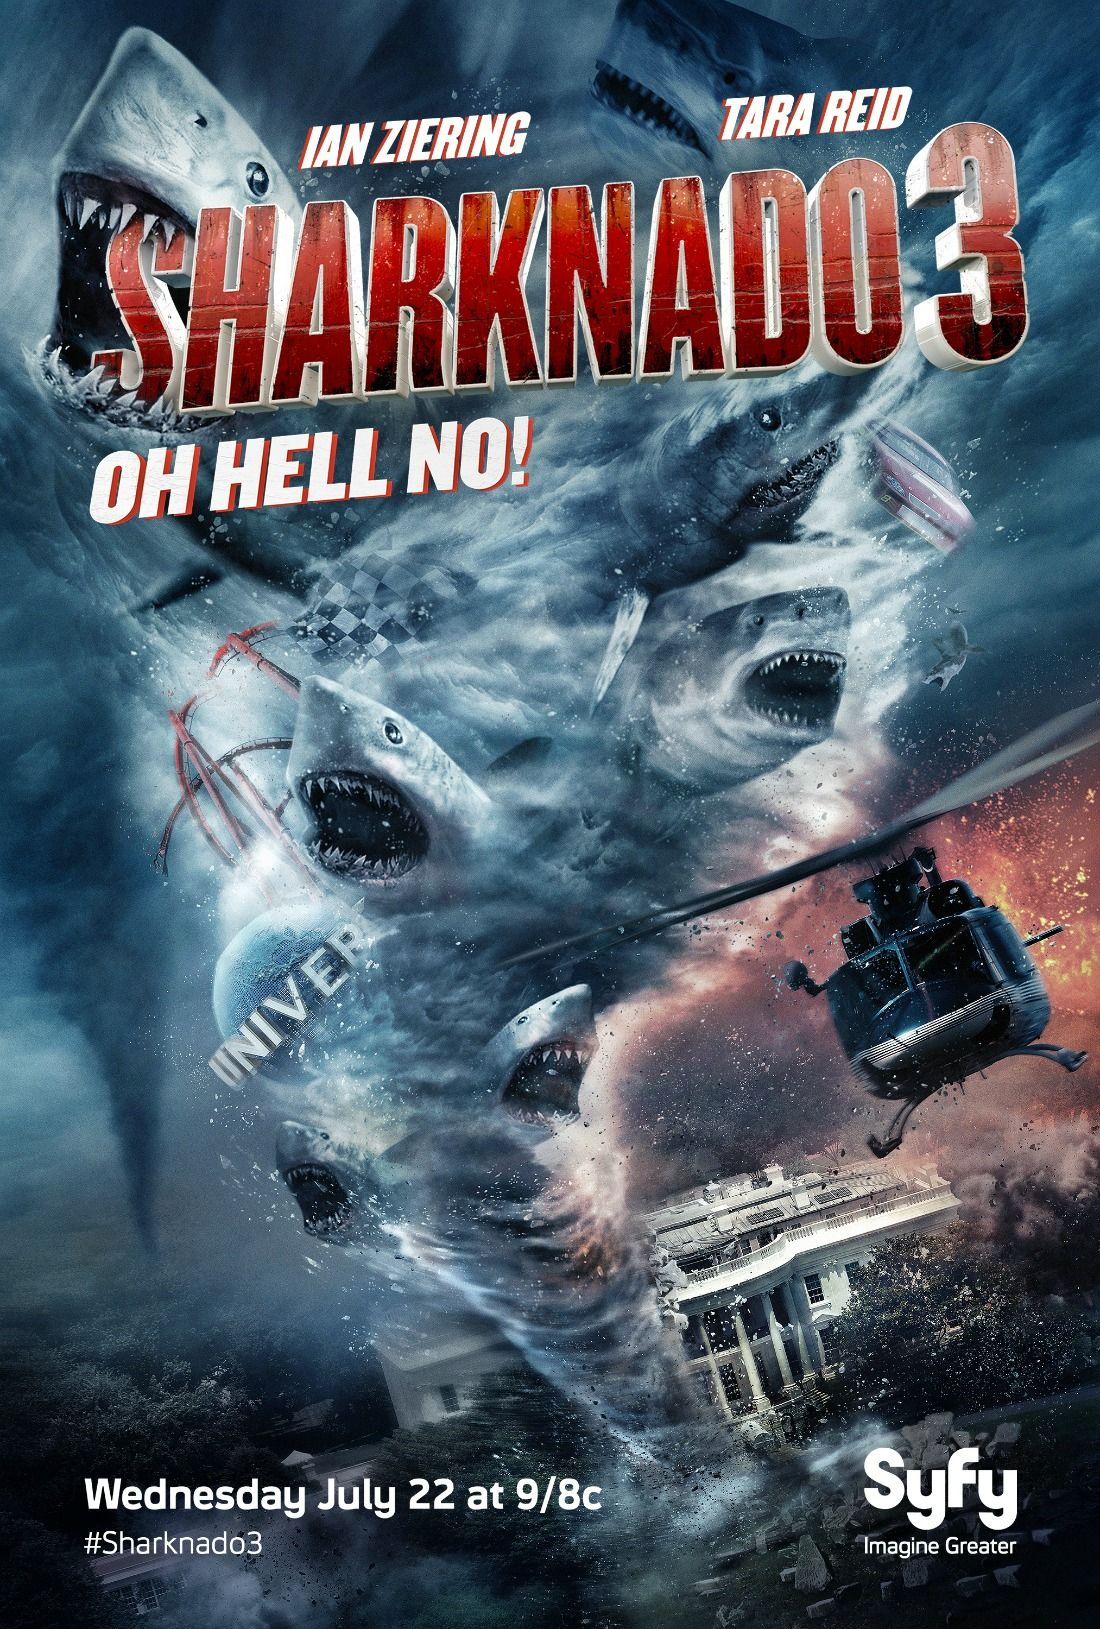 First Official Poster For Sharknado 3 | SyFy movies ...